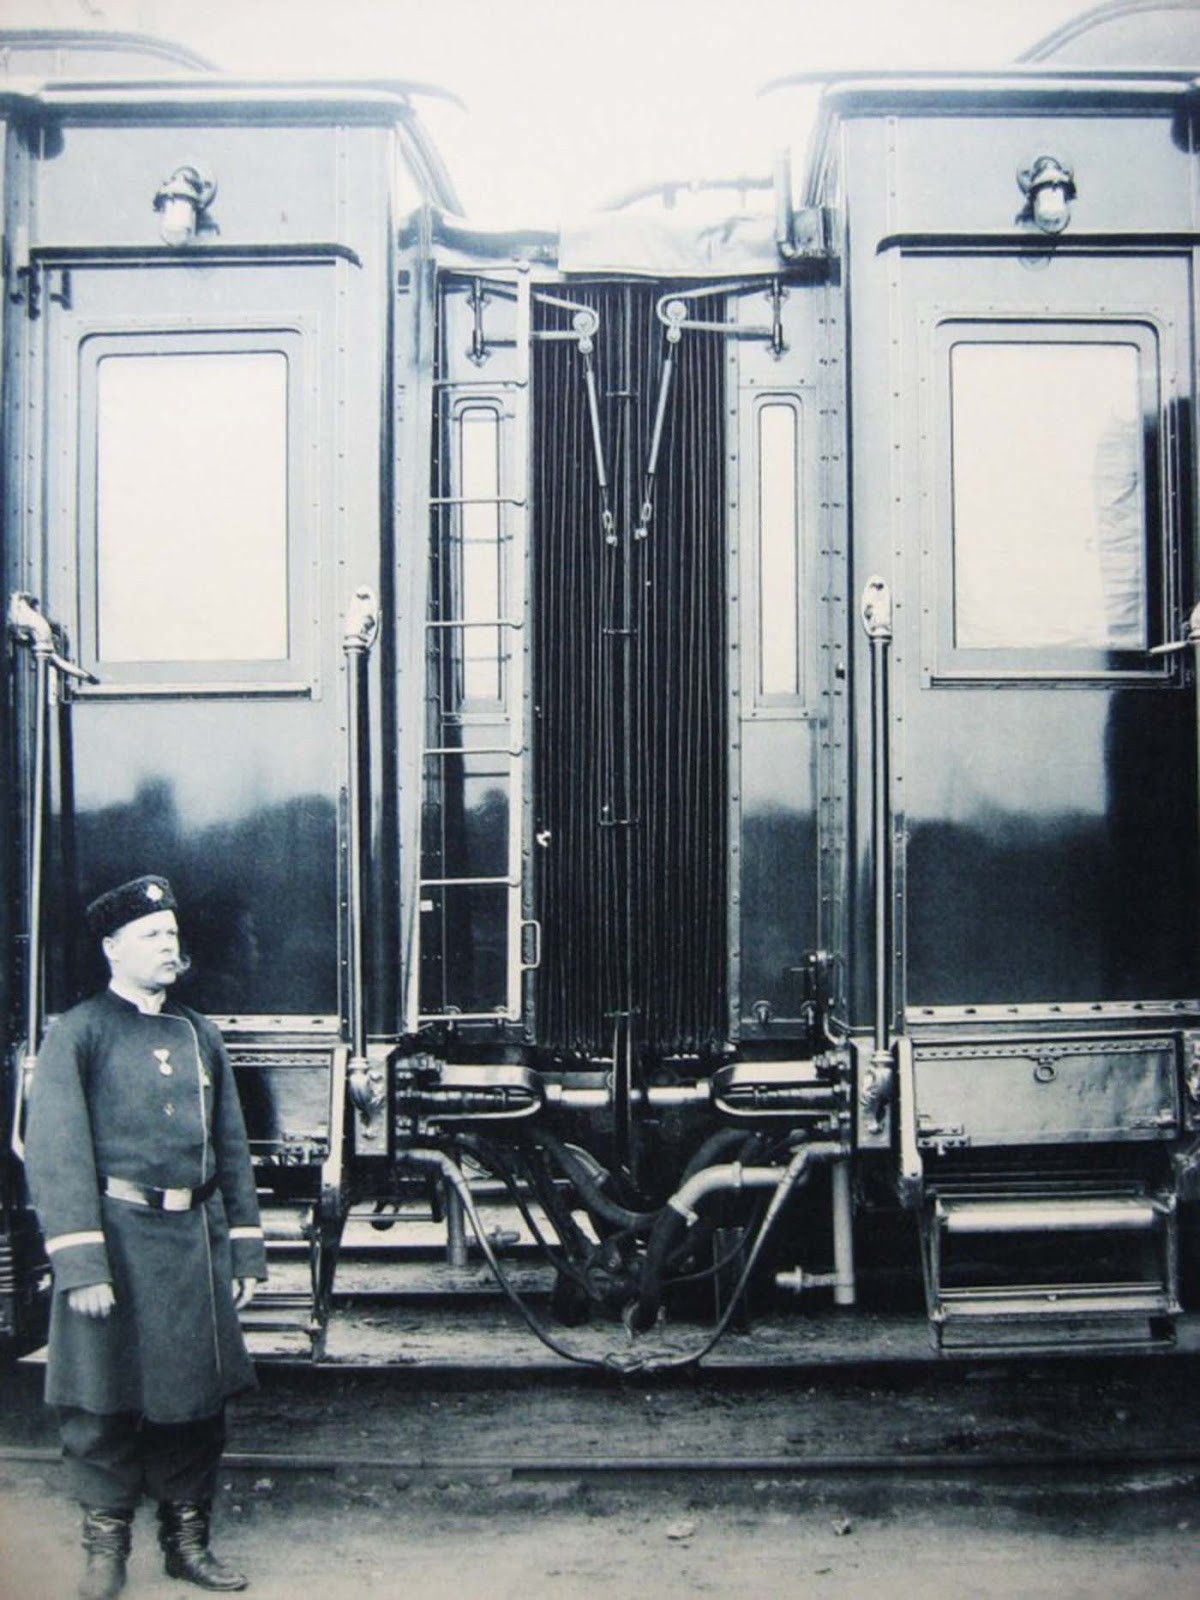 A guard in front of the carriage.